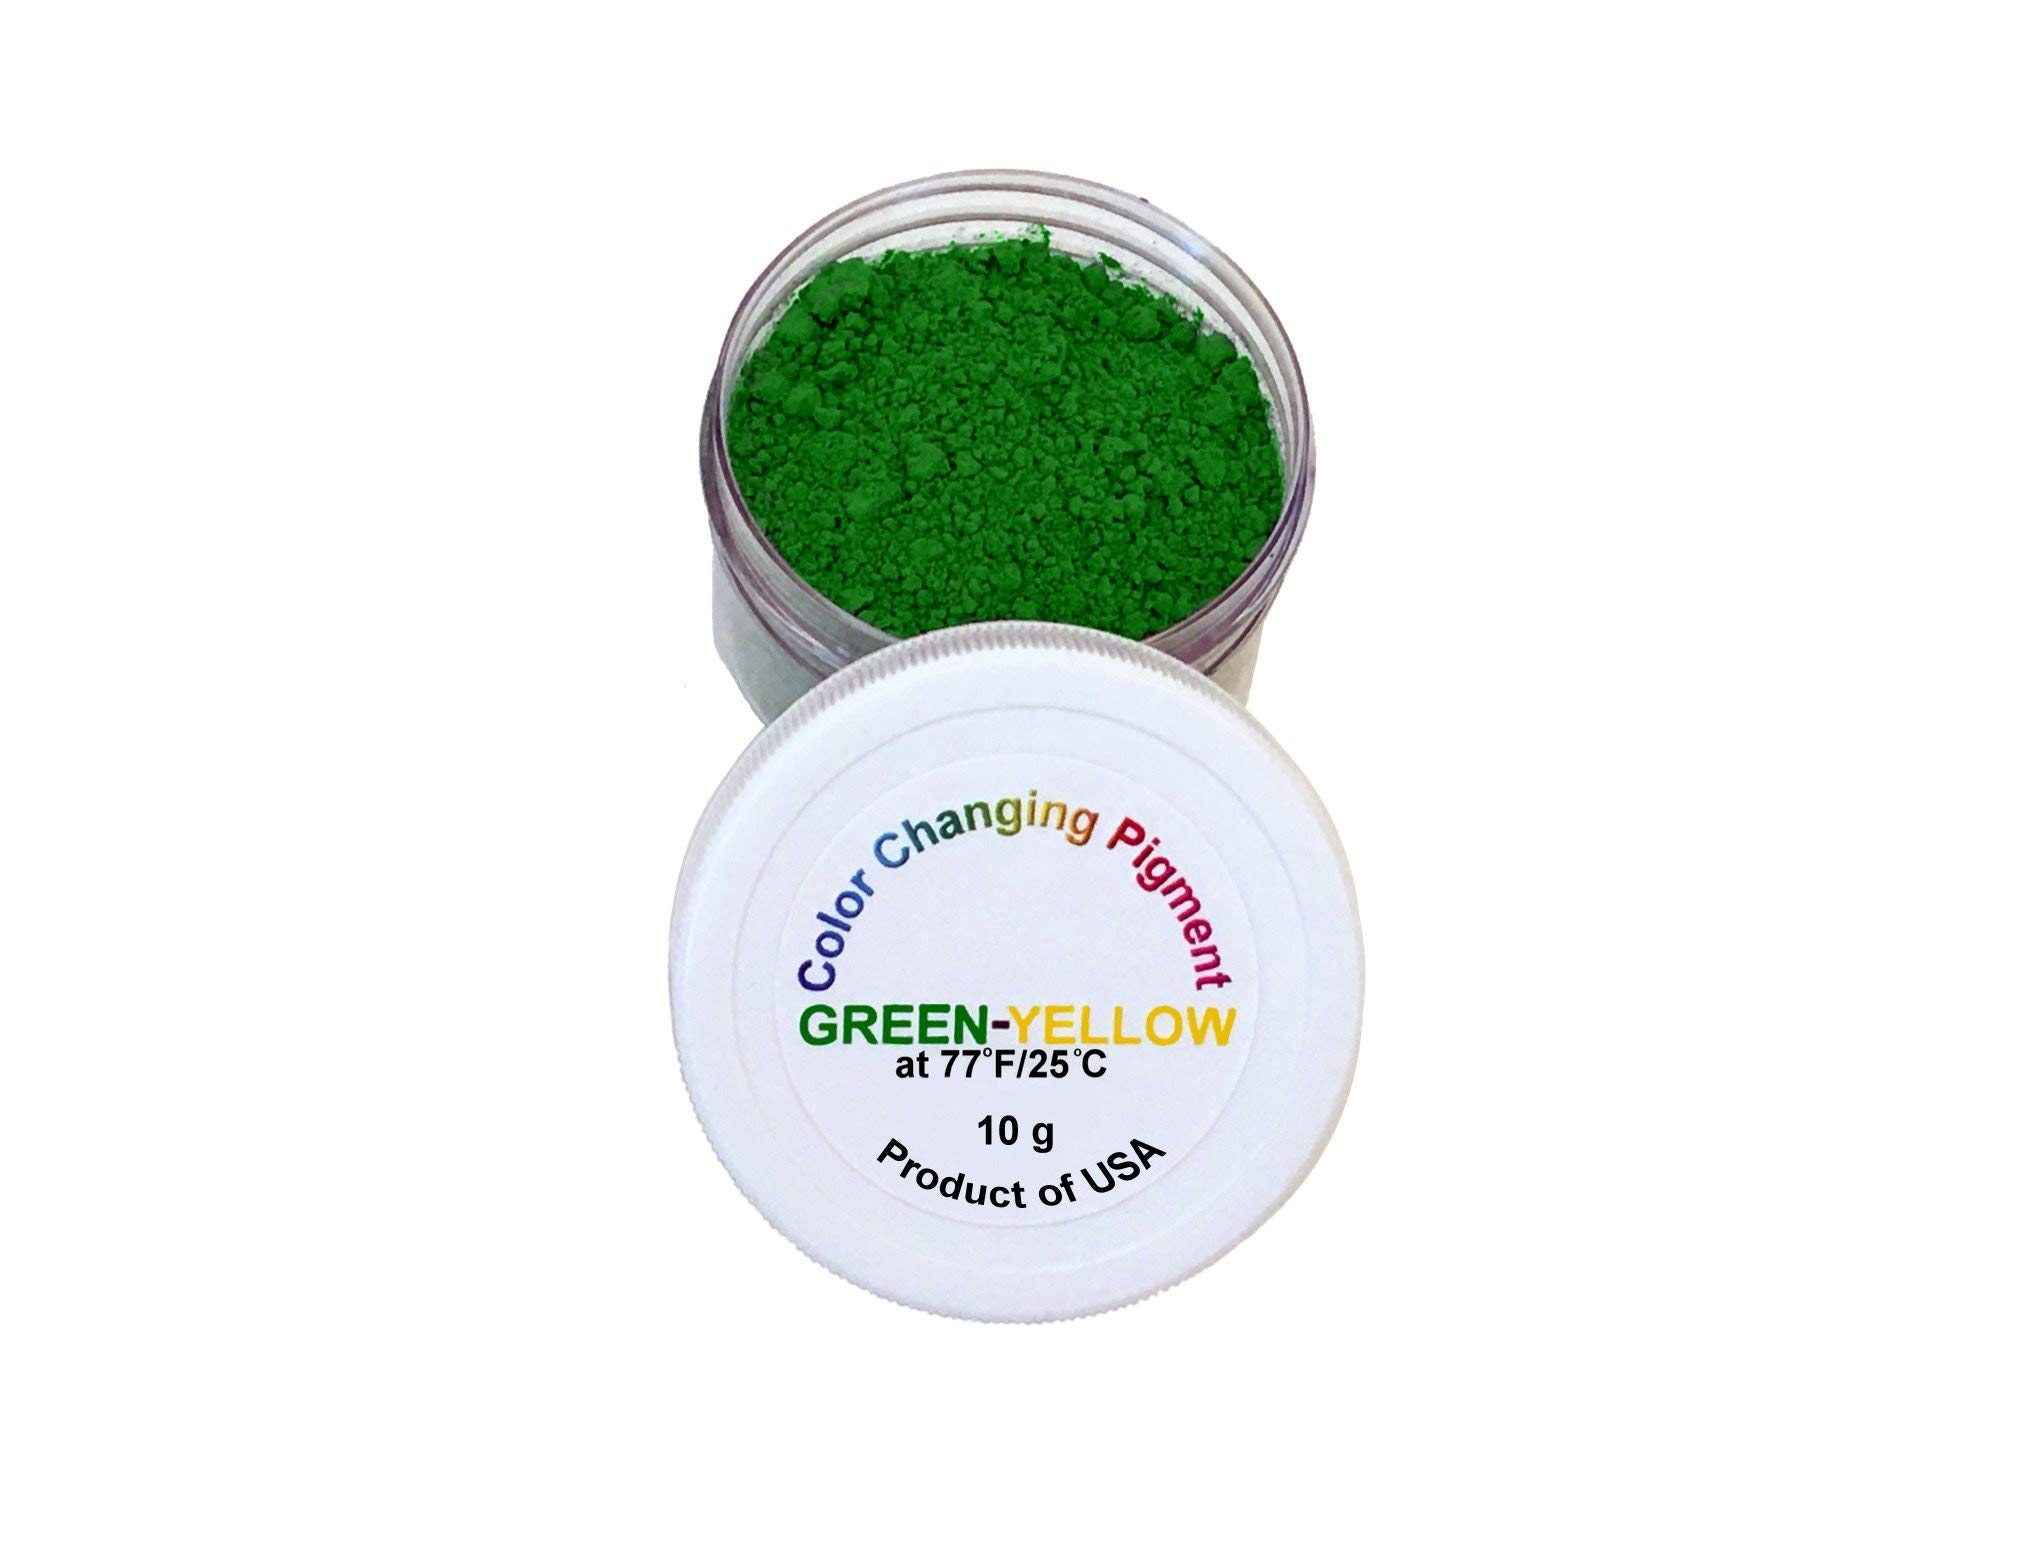 Temperature Activated Thermochromic Color Changing Powder Pigment Green Changing to Yellow at 77F/25C